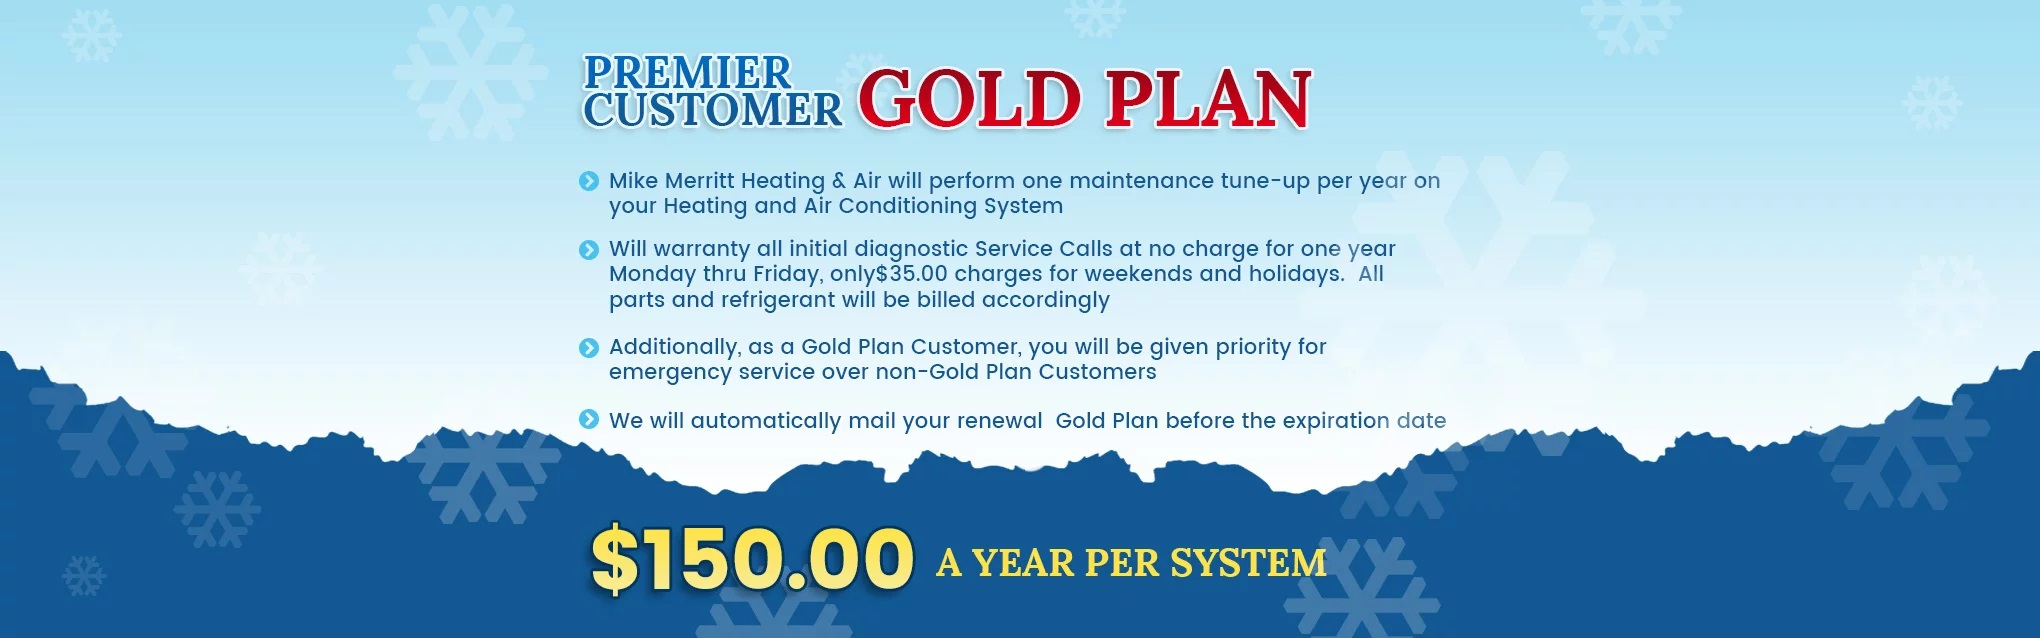 Premier Customer Gold Plan - $150.00 a Year Per System